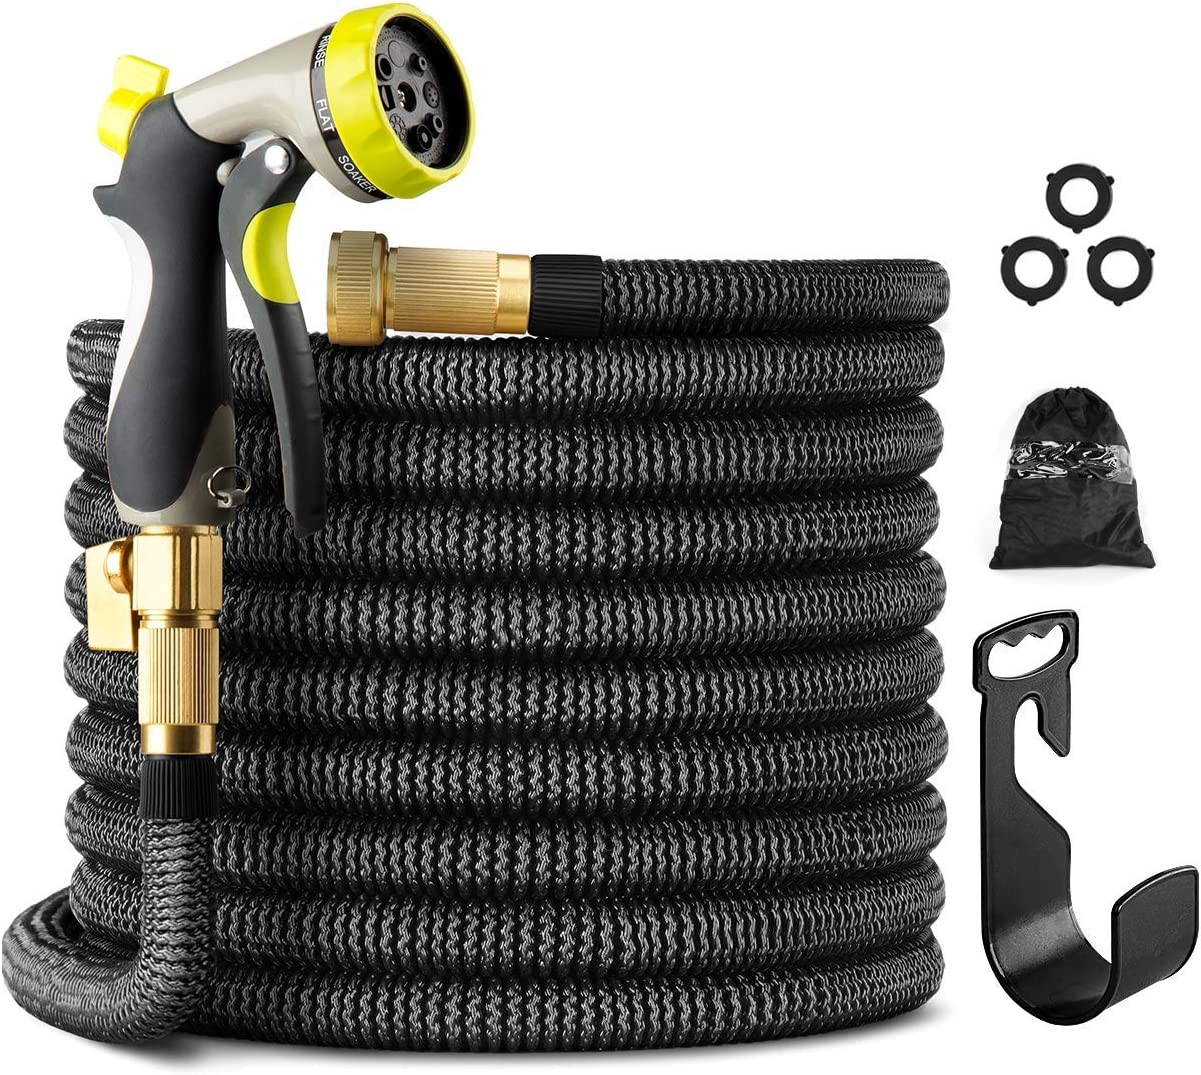 PAMAPIC 100 FT Expandable Garden Hose, Lightweight Durable Flexible Water Hose with 3/4 Nozzle Solid Brass Connector and 8 Pattern High Pressure Water Spray Nozzle